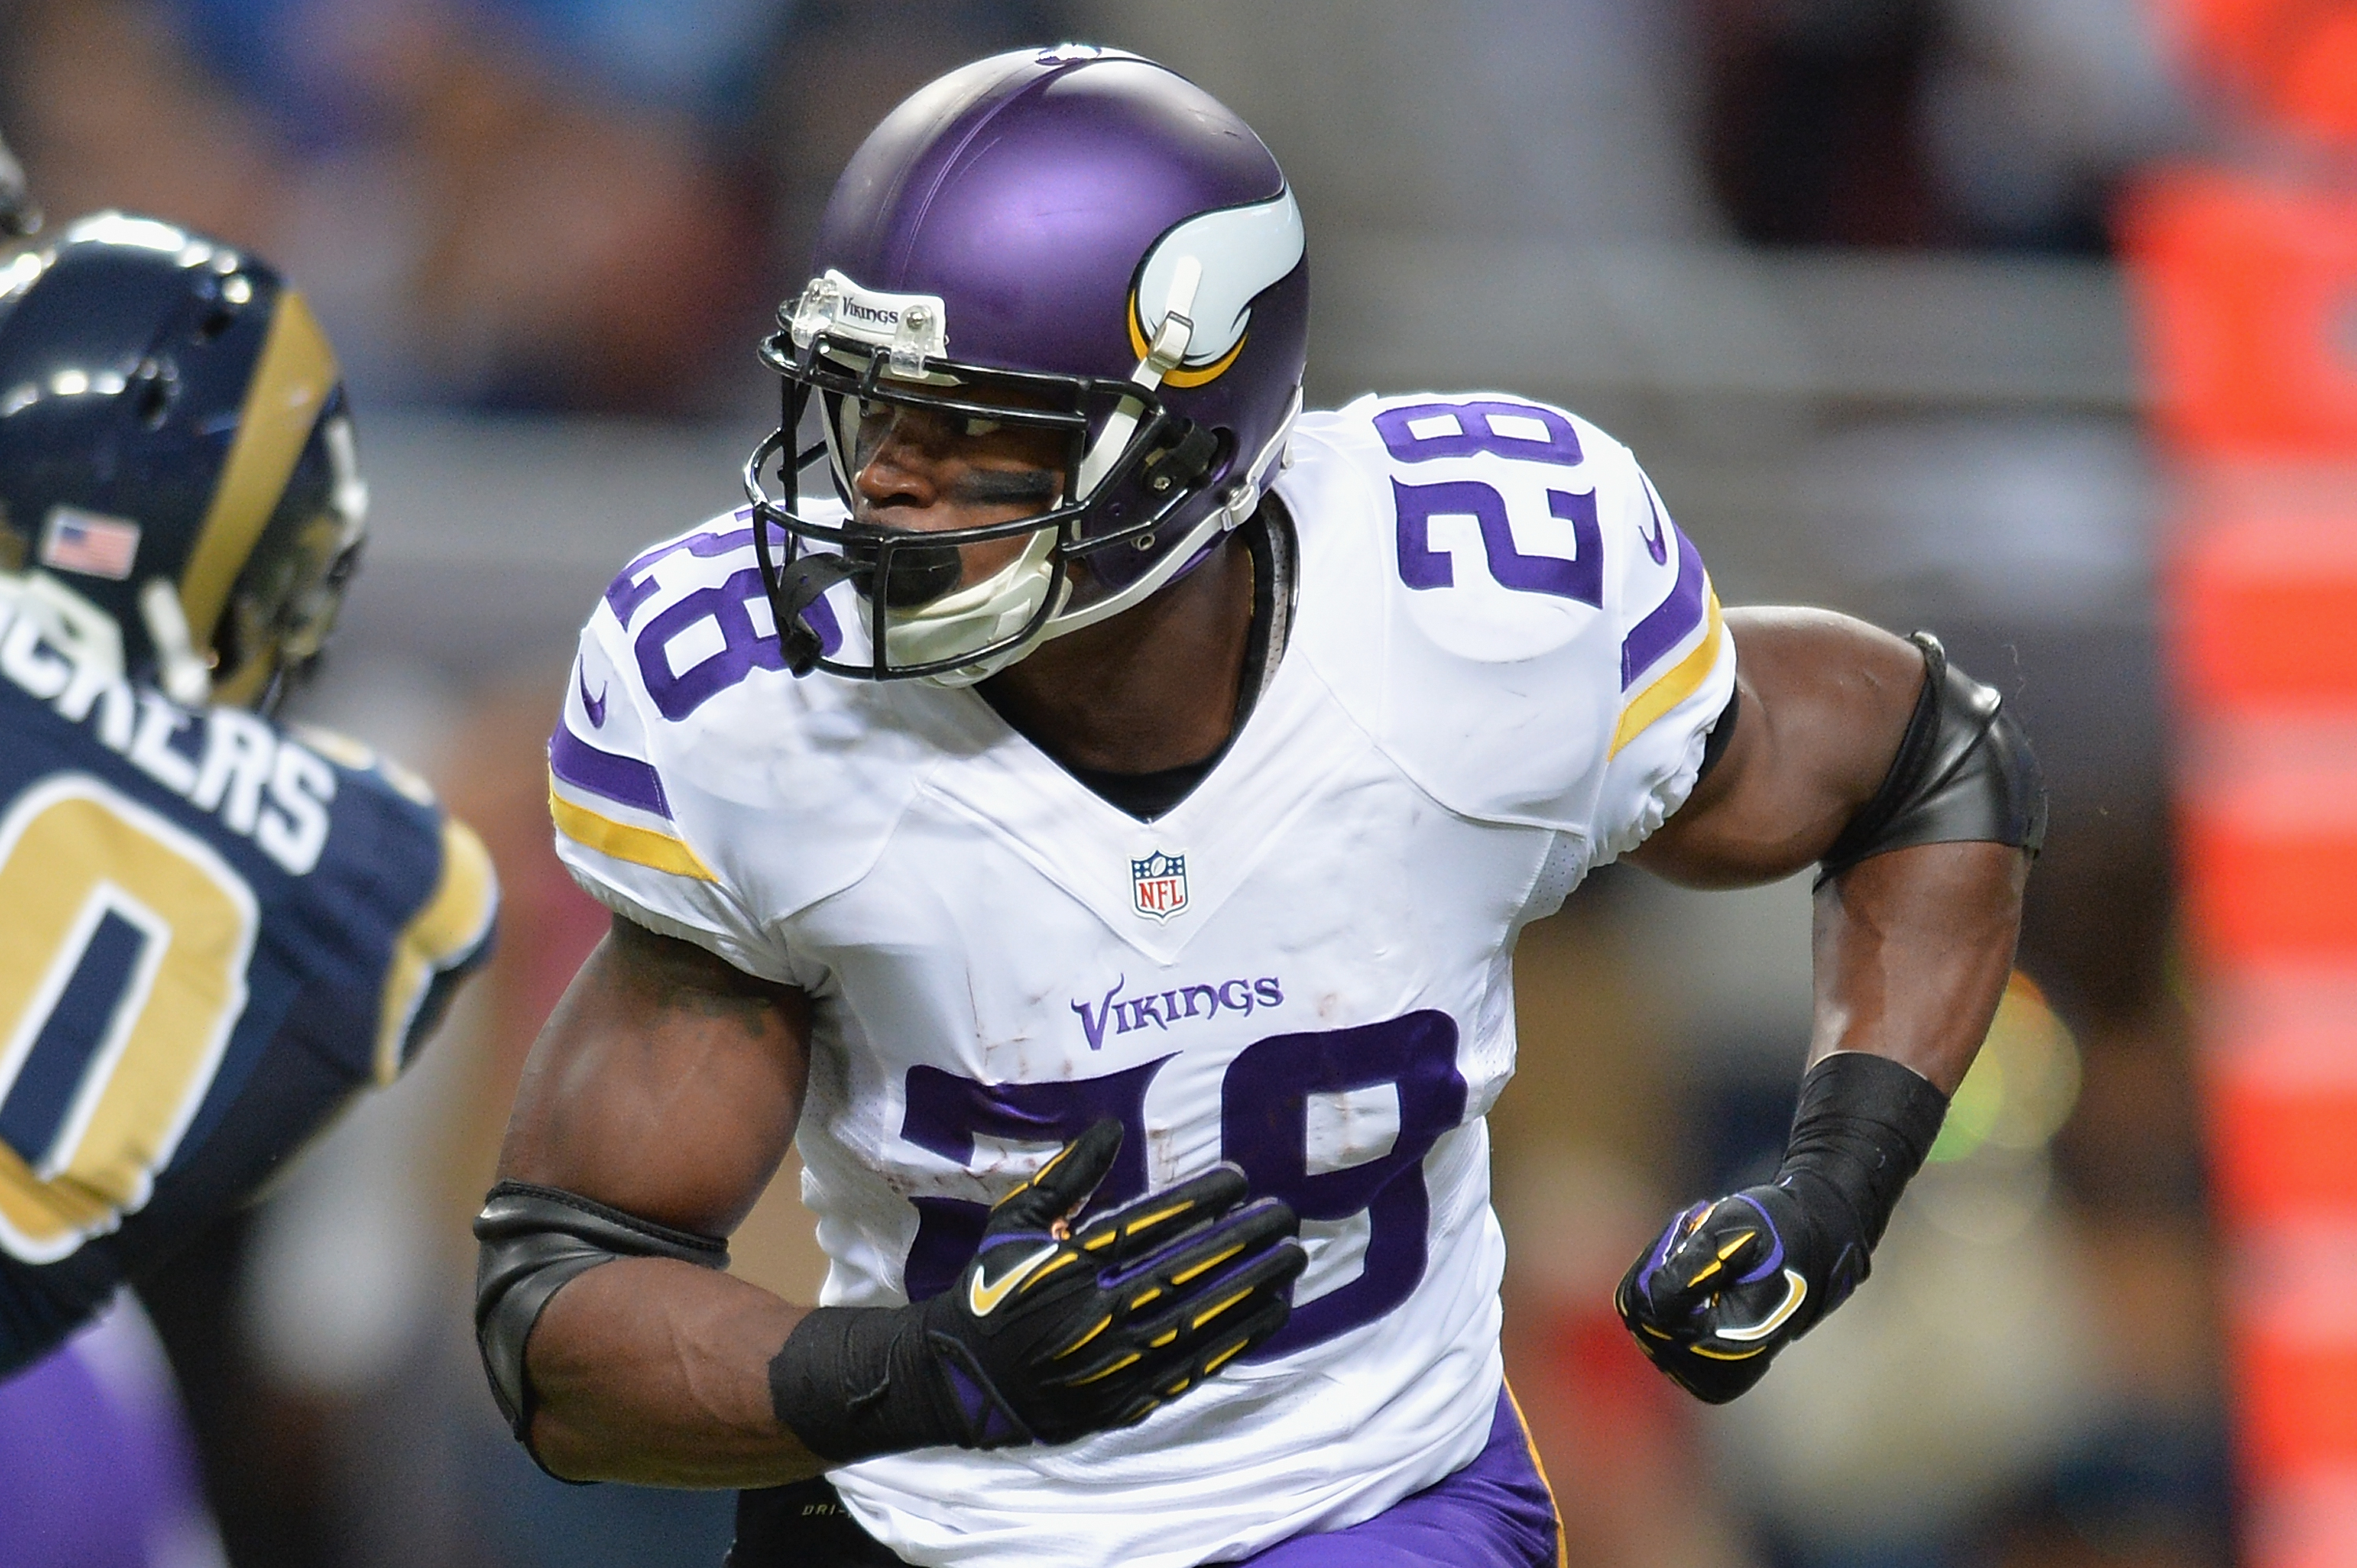 Adrian Peterson #28 of the Minnesota Vikings plays against the St. Louis Rams on Sept. 7 in St. Louis.